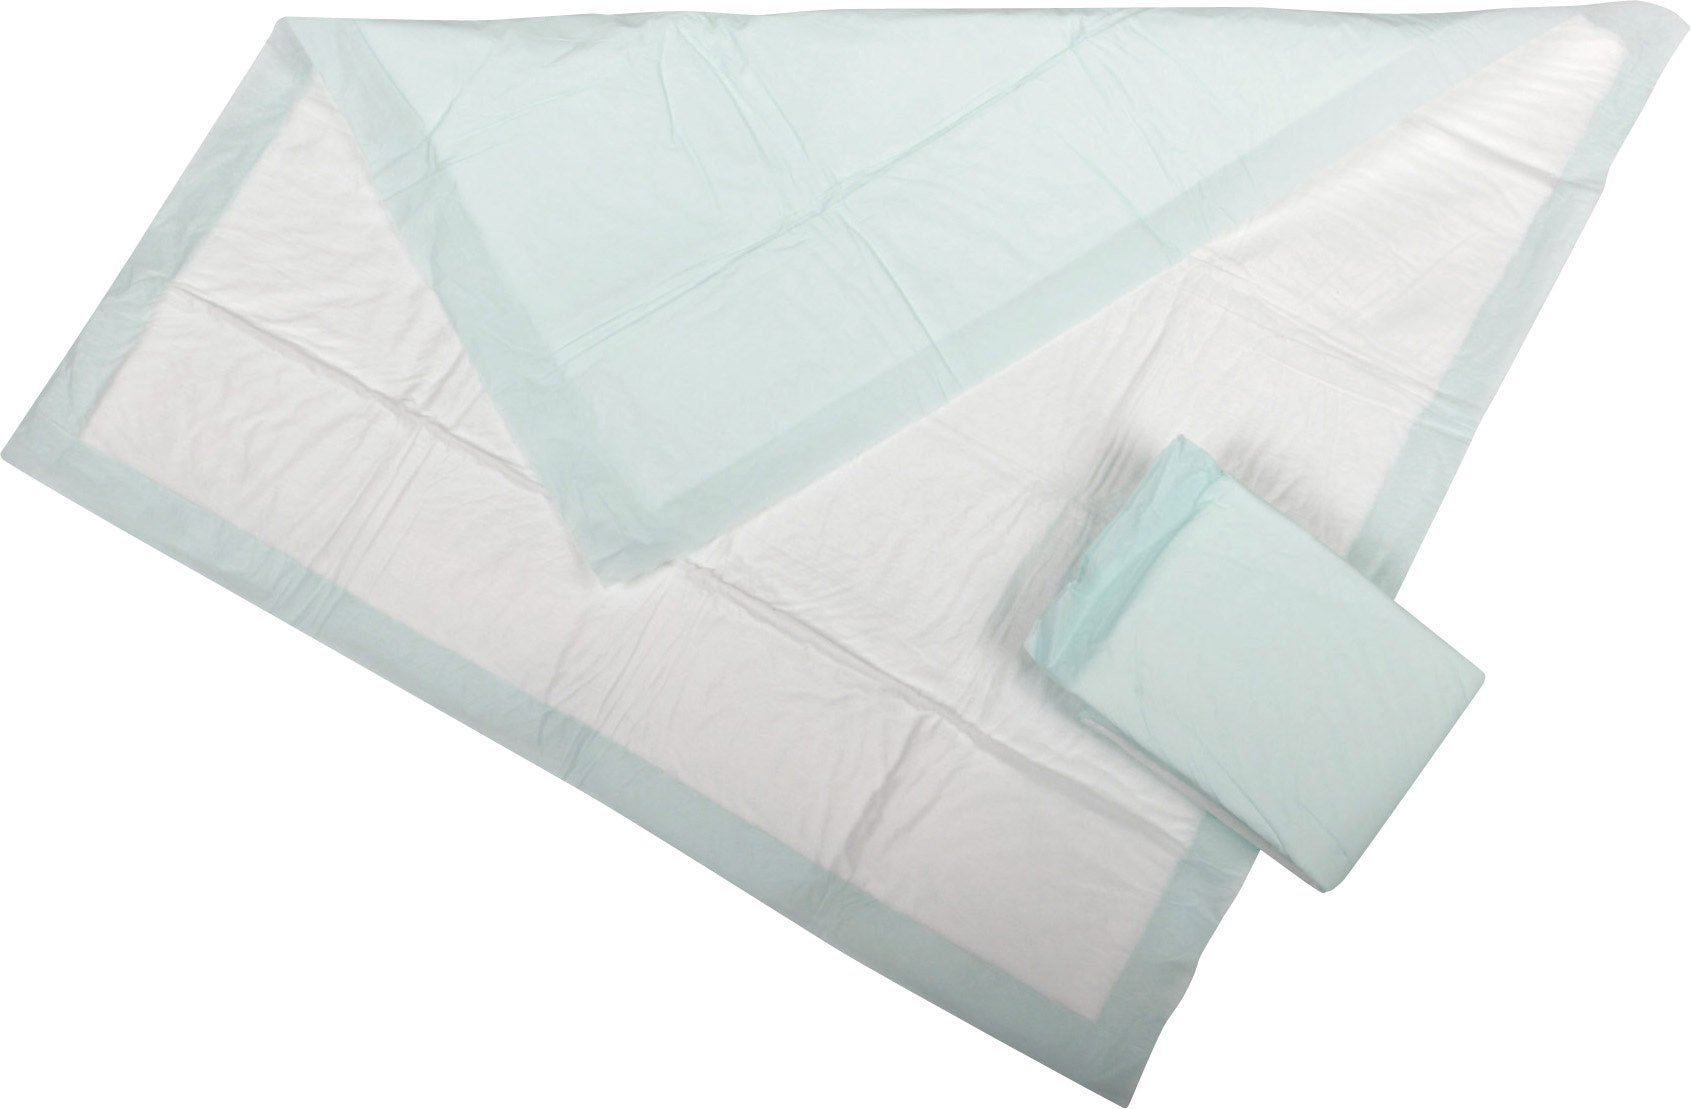 Medline Heavy Absorbency 30'' x 36'' Quilted Fluff And Polymer Disposable Underpads, 75 Per Case, Great For Protecting Beds, Furniture, Surfaces